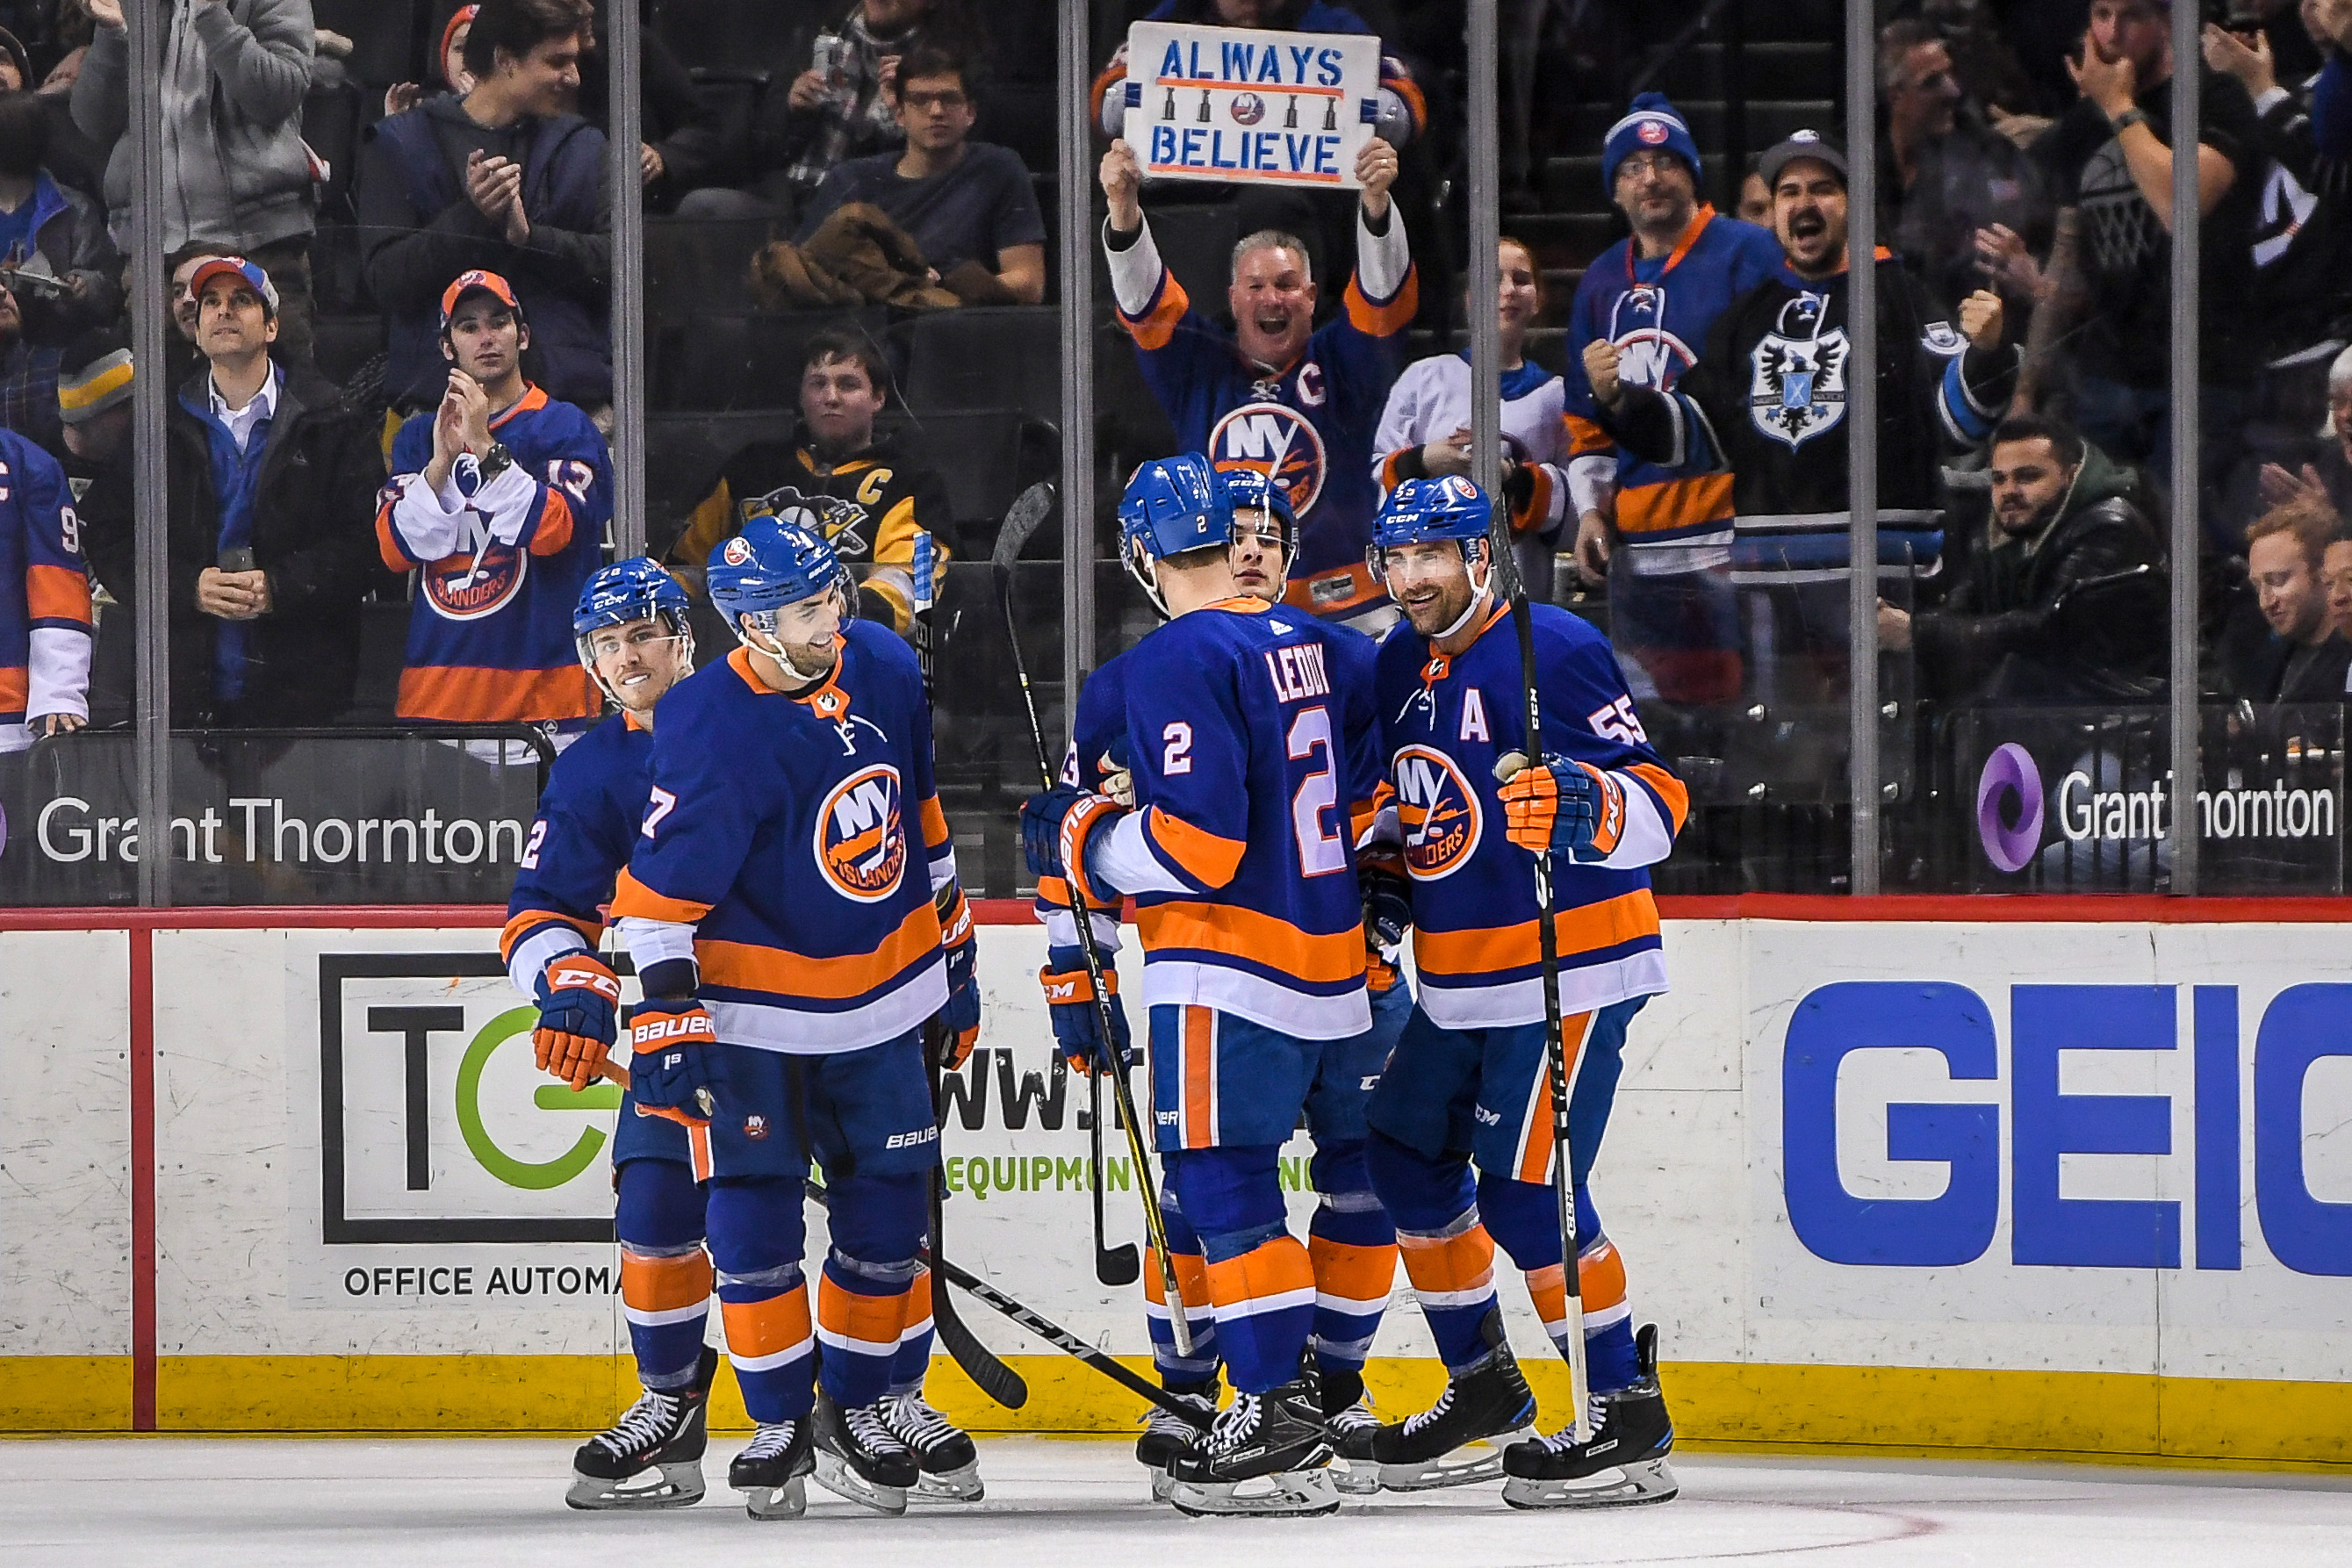 Mar 20, 2018; Brooklyn, NY, USA; New York Islanders celebrate the goal by New York Islanders center Mathew Barzal (13) against the Pittsburgh Penguins during the first period at Barclays Center. Mandatory Credit: Dennis Schneidler-USA TODAY Sports